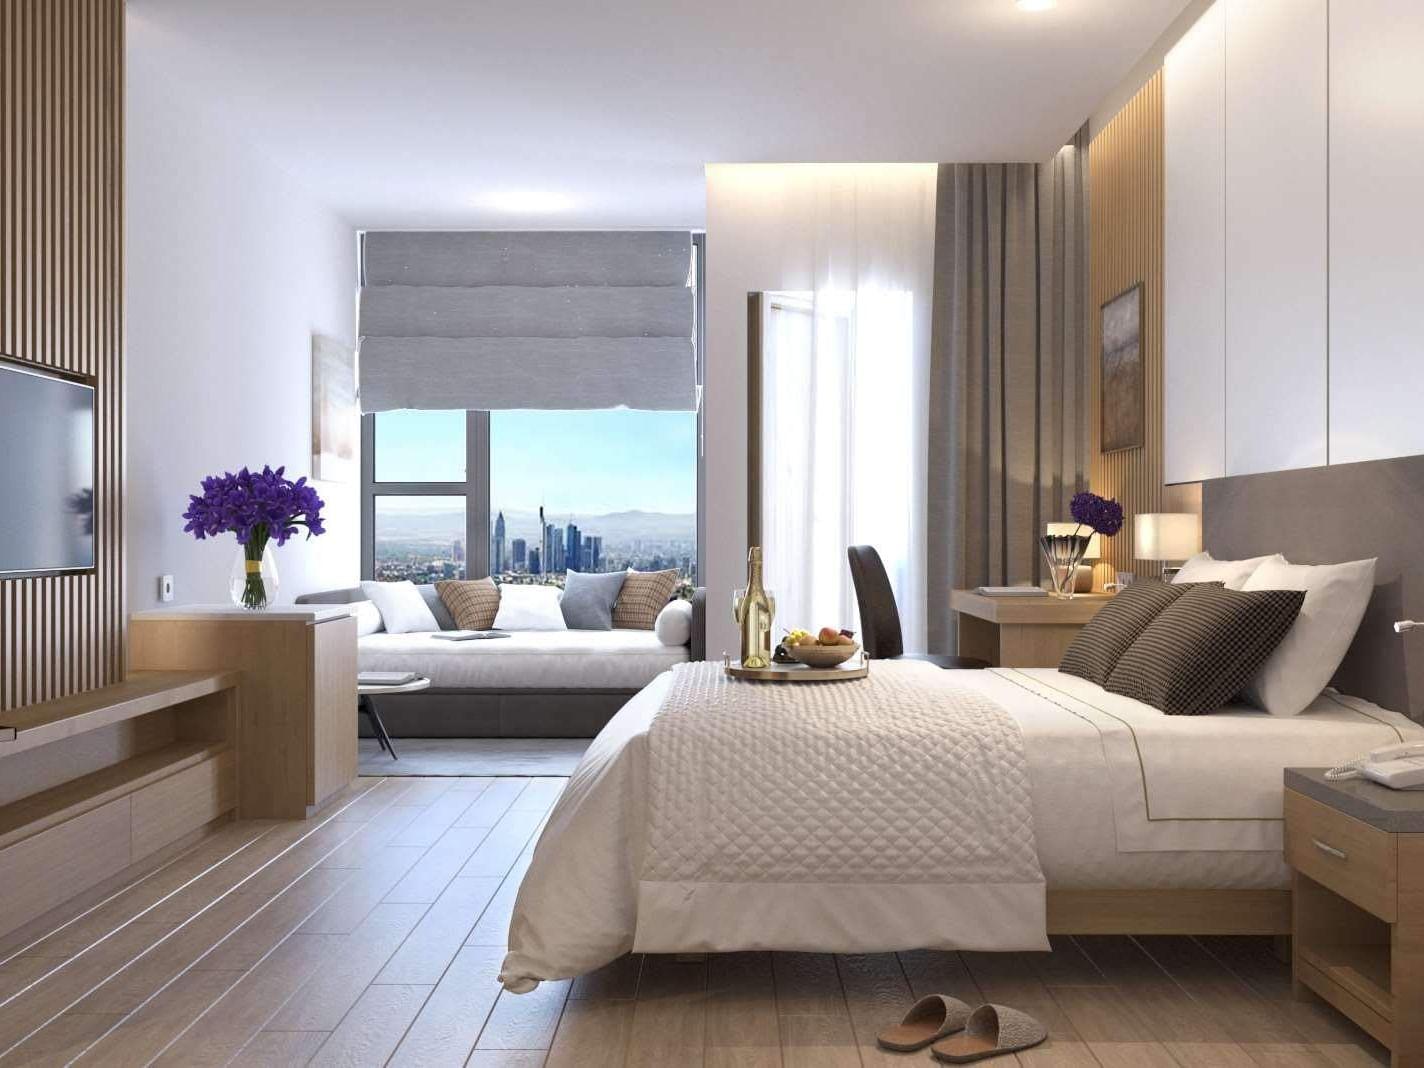 hotel room with king bed, ocean view and luxury finishings